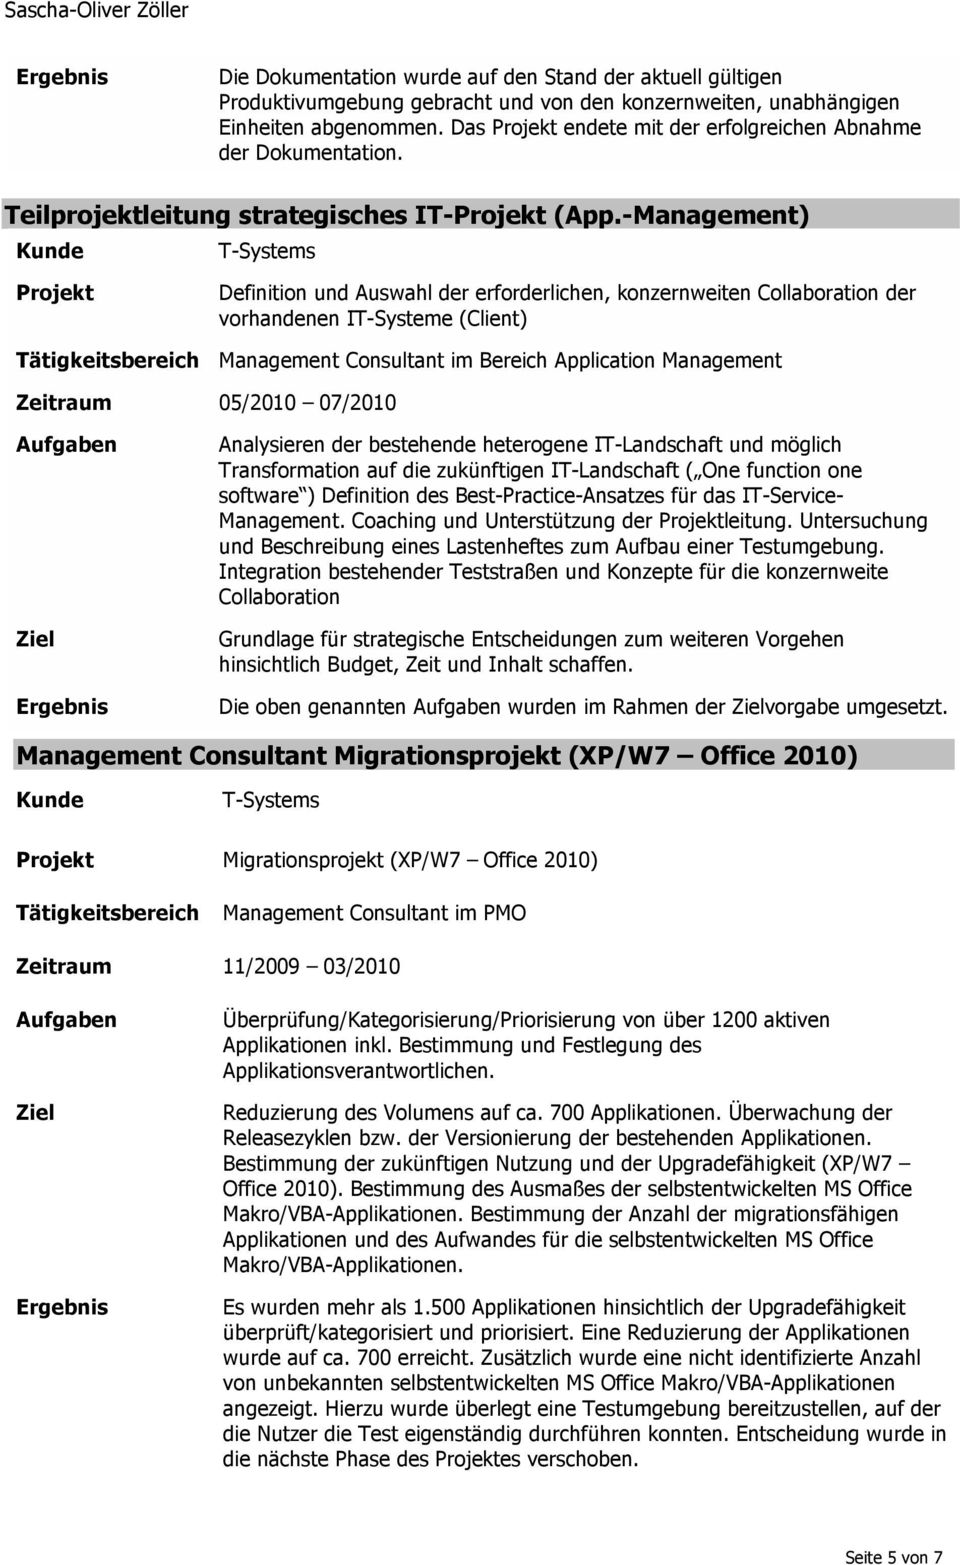 -Management) Definition und Auswahl der erforderlichen, konzernweiten Collaboration der vorhandenen IT-Systeme (Client) Management Consultant im Bereich Application Management Zeitraum 05/2010